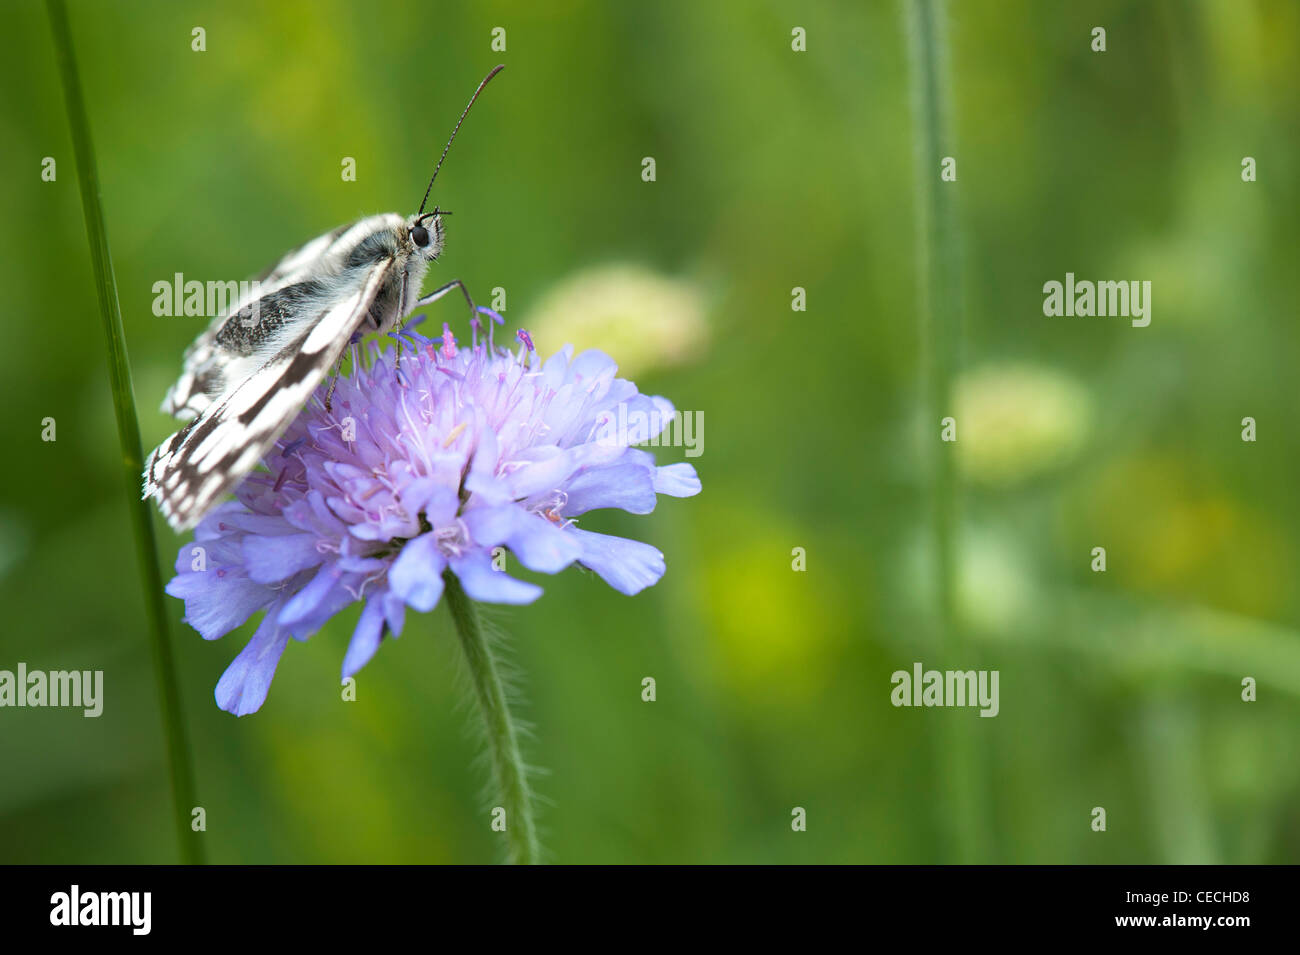 Melanargia galathea. Marbled white butterfly on field scabious flower in the english countryside - Stock Image